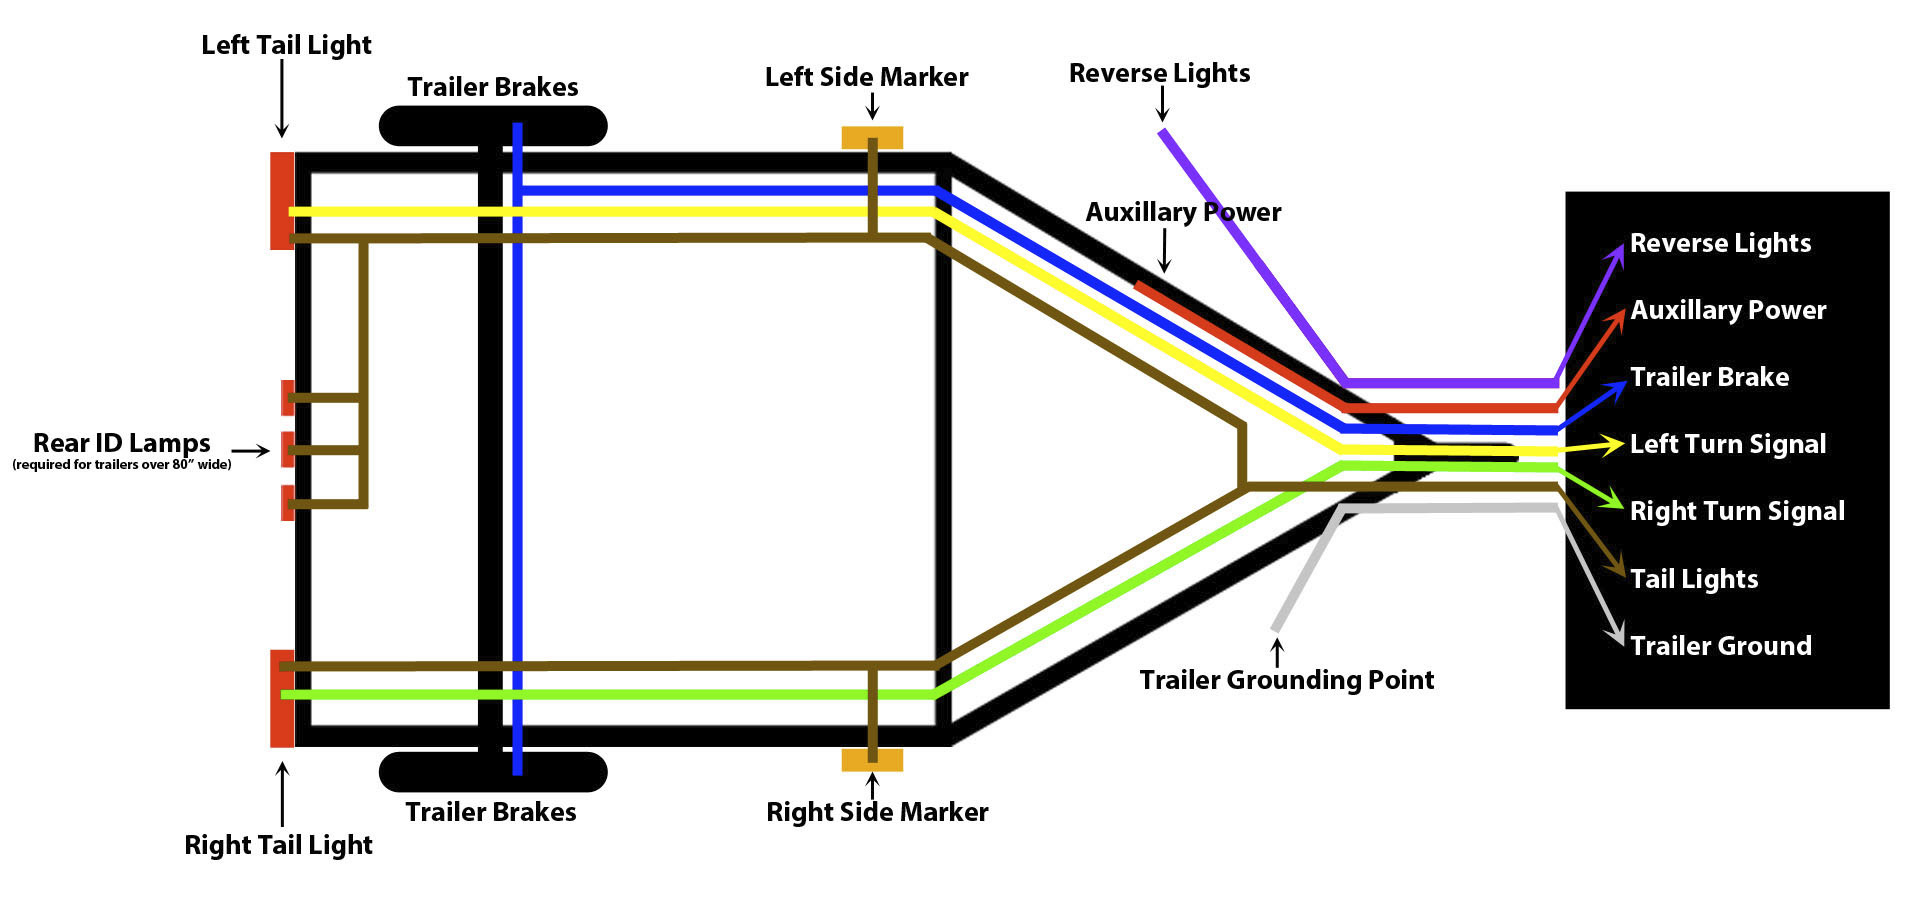 How To Wire Trailer Lights - Trailer Wiring Guide & Videos - 6 Pin Trailer Wiring Diagram